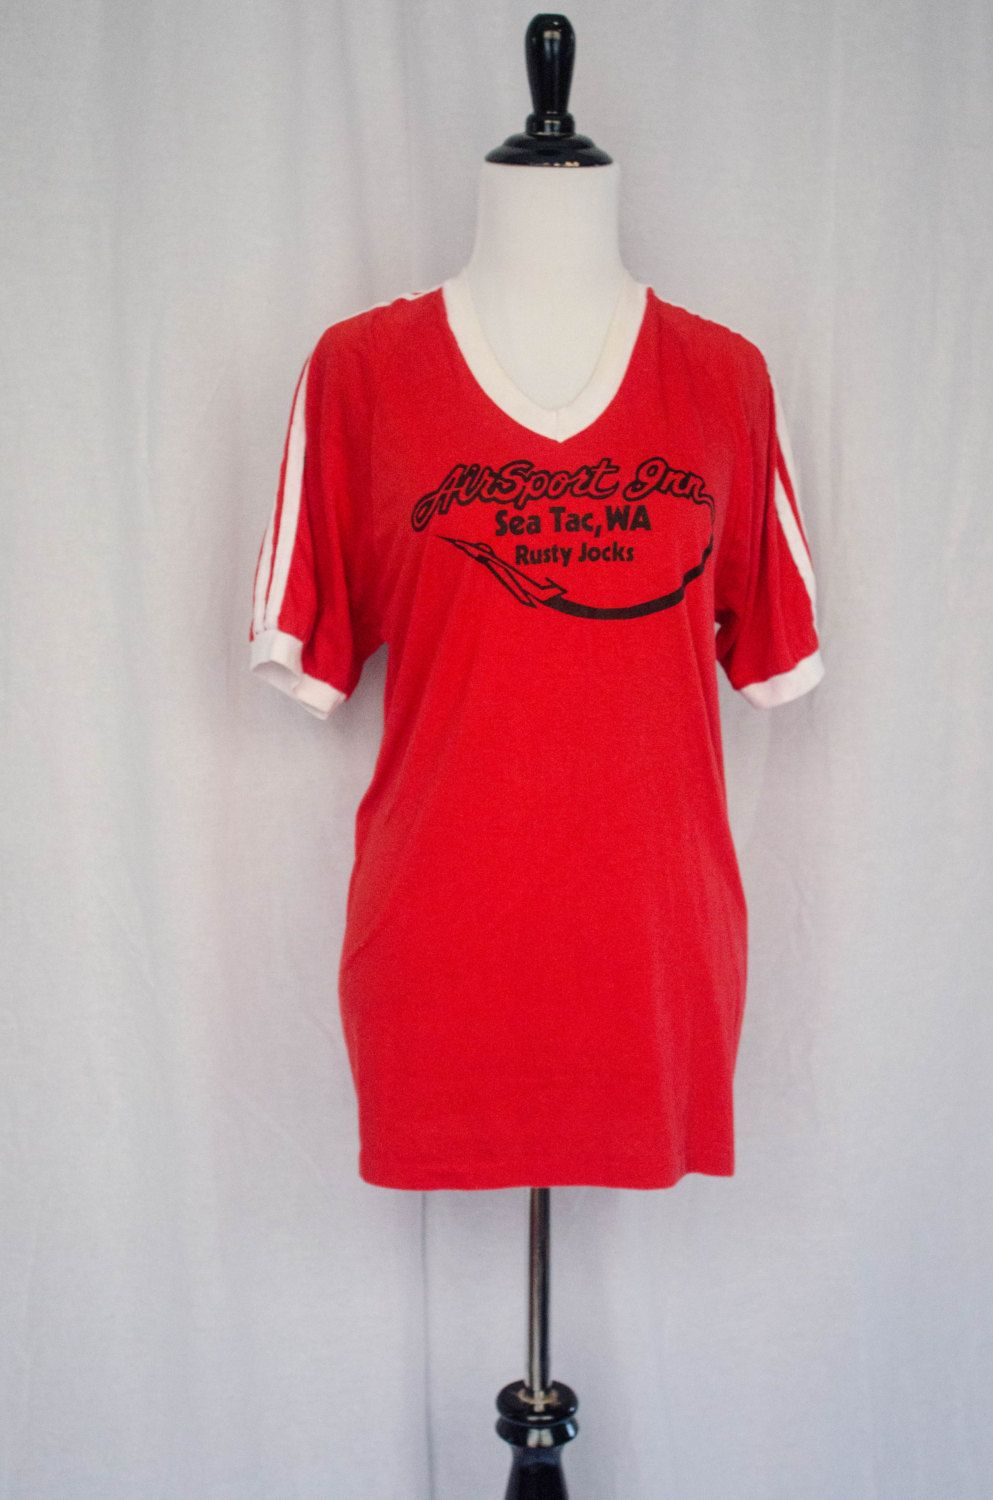 Vintage 1980's 'Cafe Racer' V-Neck Ringer Tee Size M by BeehausVintage on Etsy